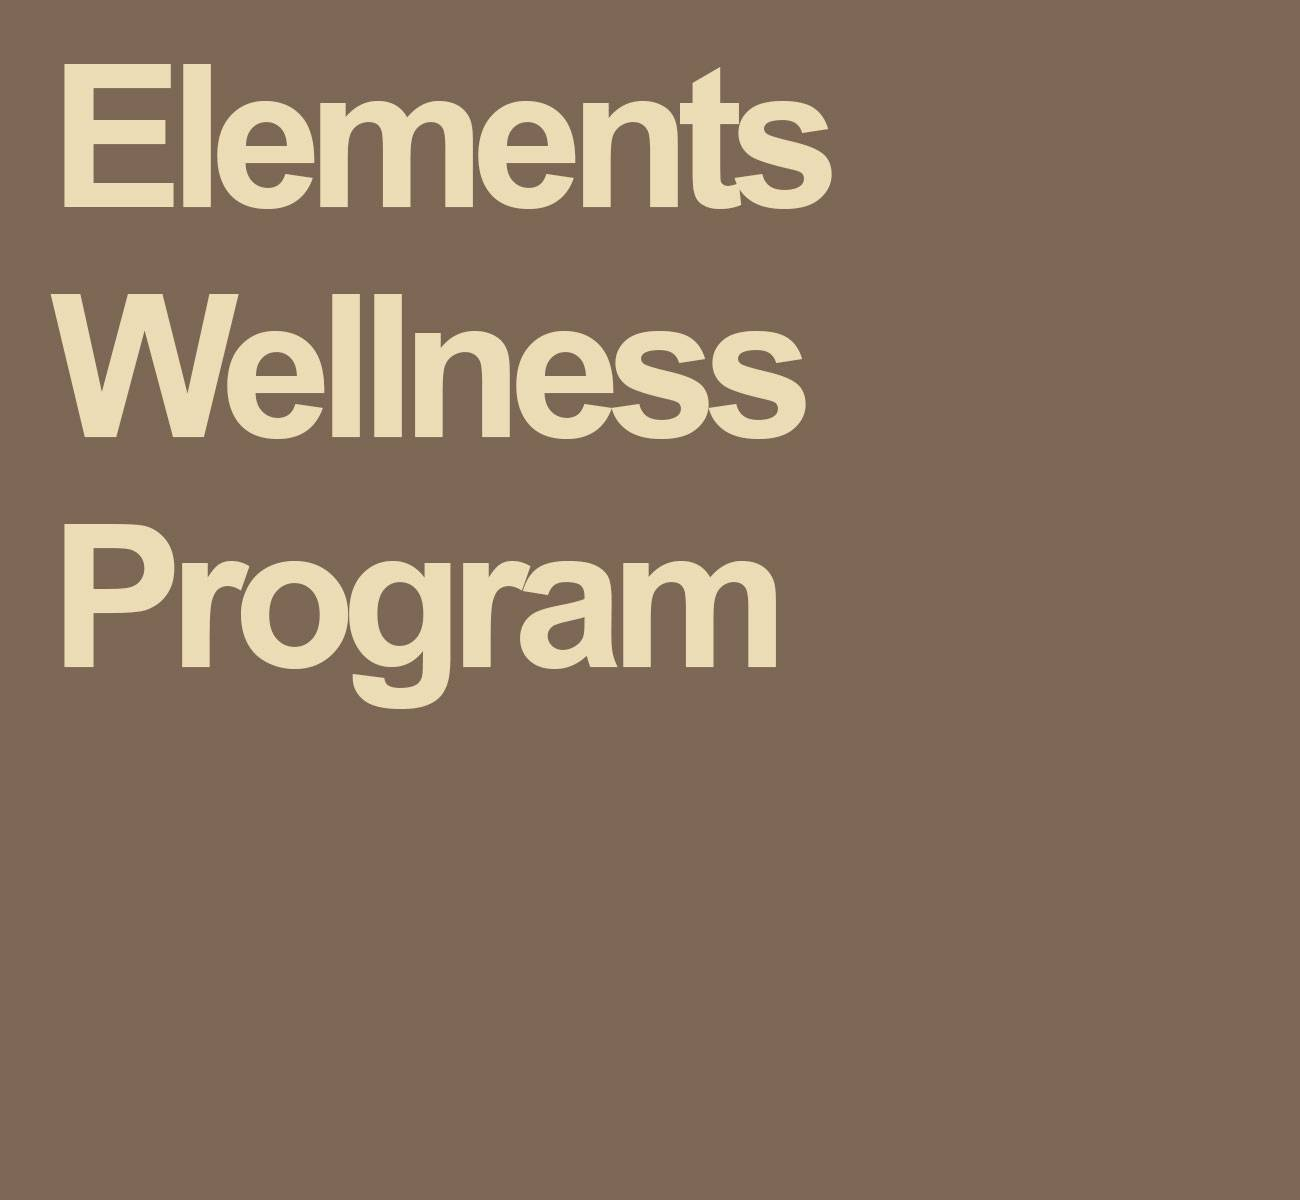 elements wellness program